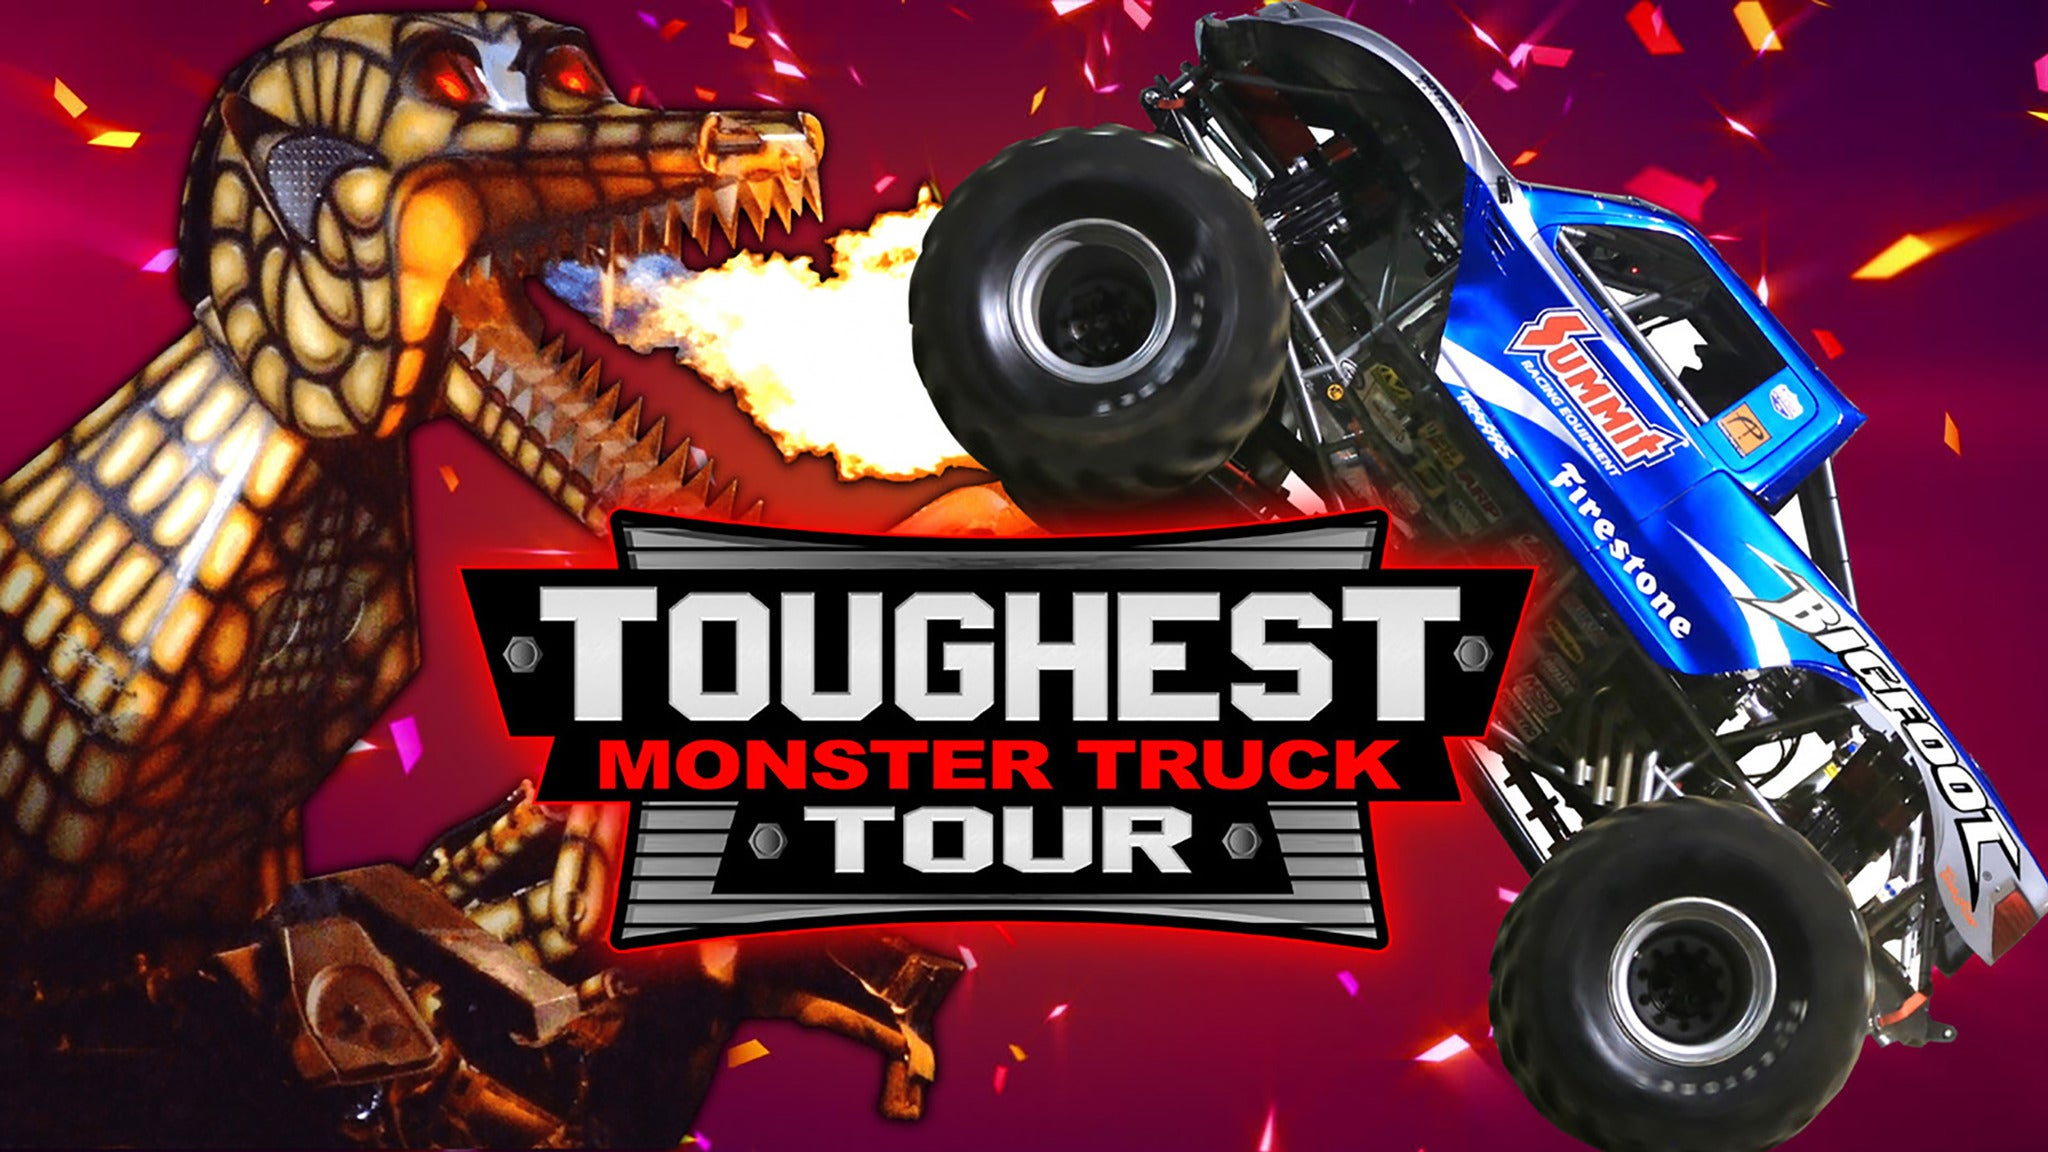 Hugo's Toughest Monster Truck Tour - Championship Weekend